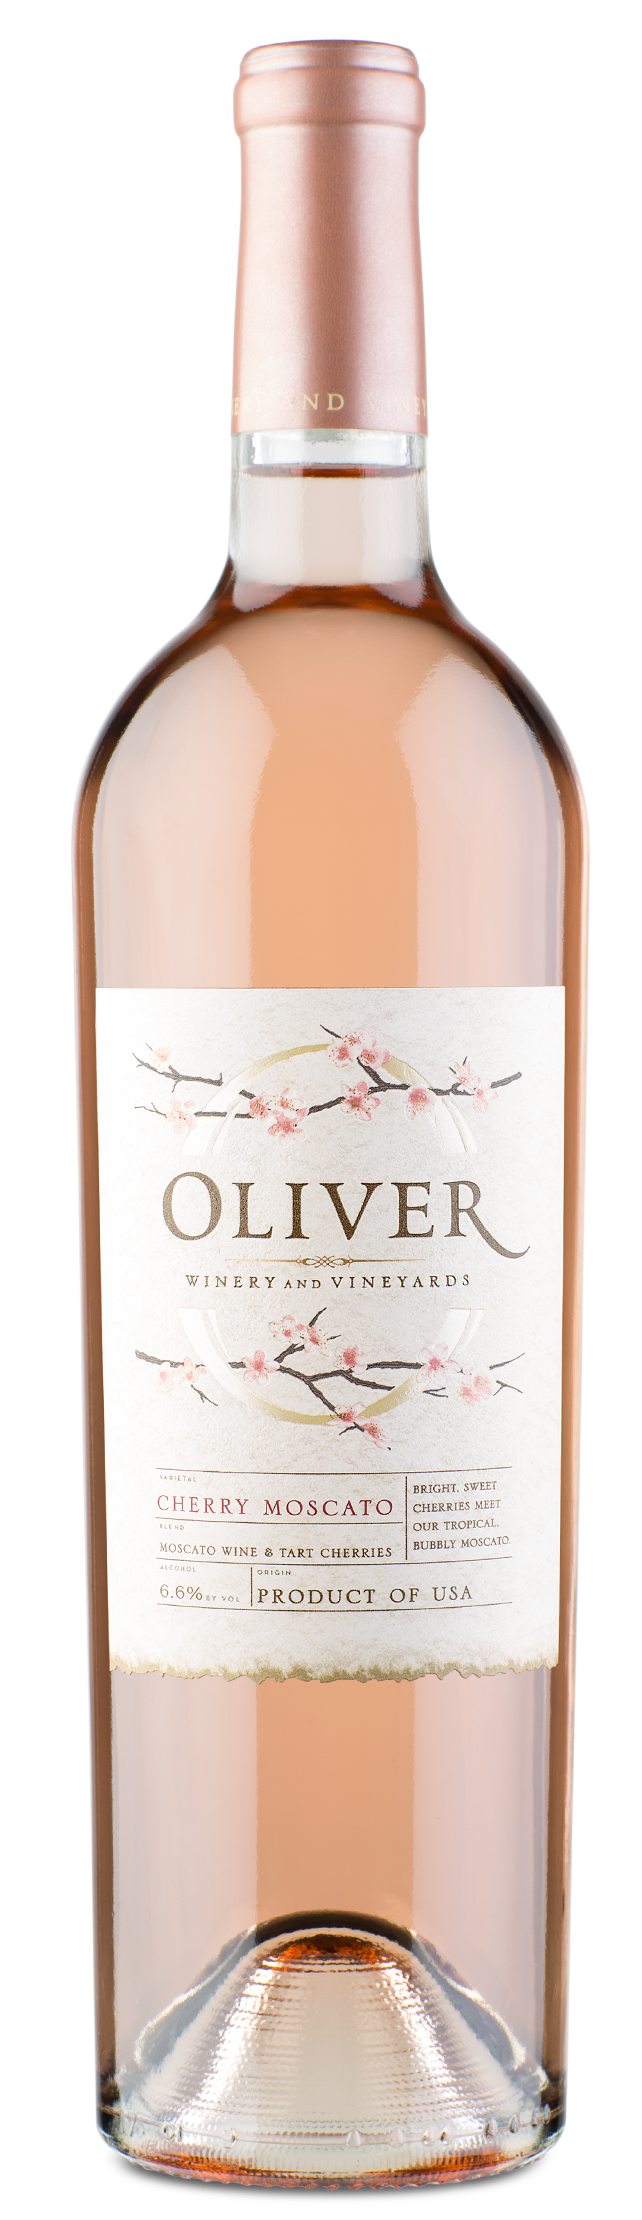 Oliver Winery Vine Series Cherry Moscato Wine